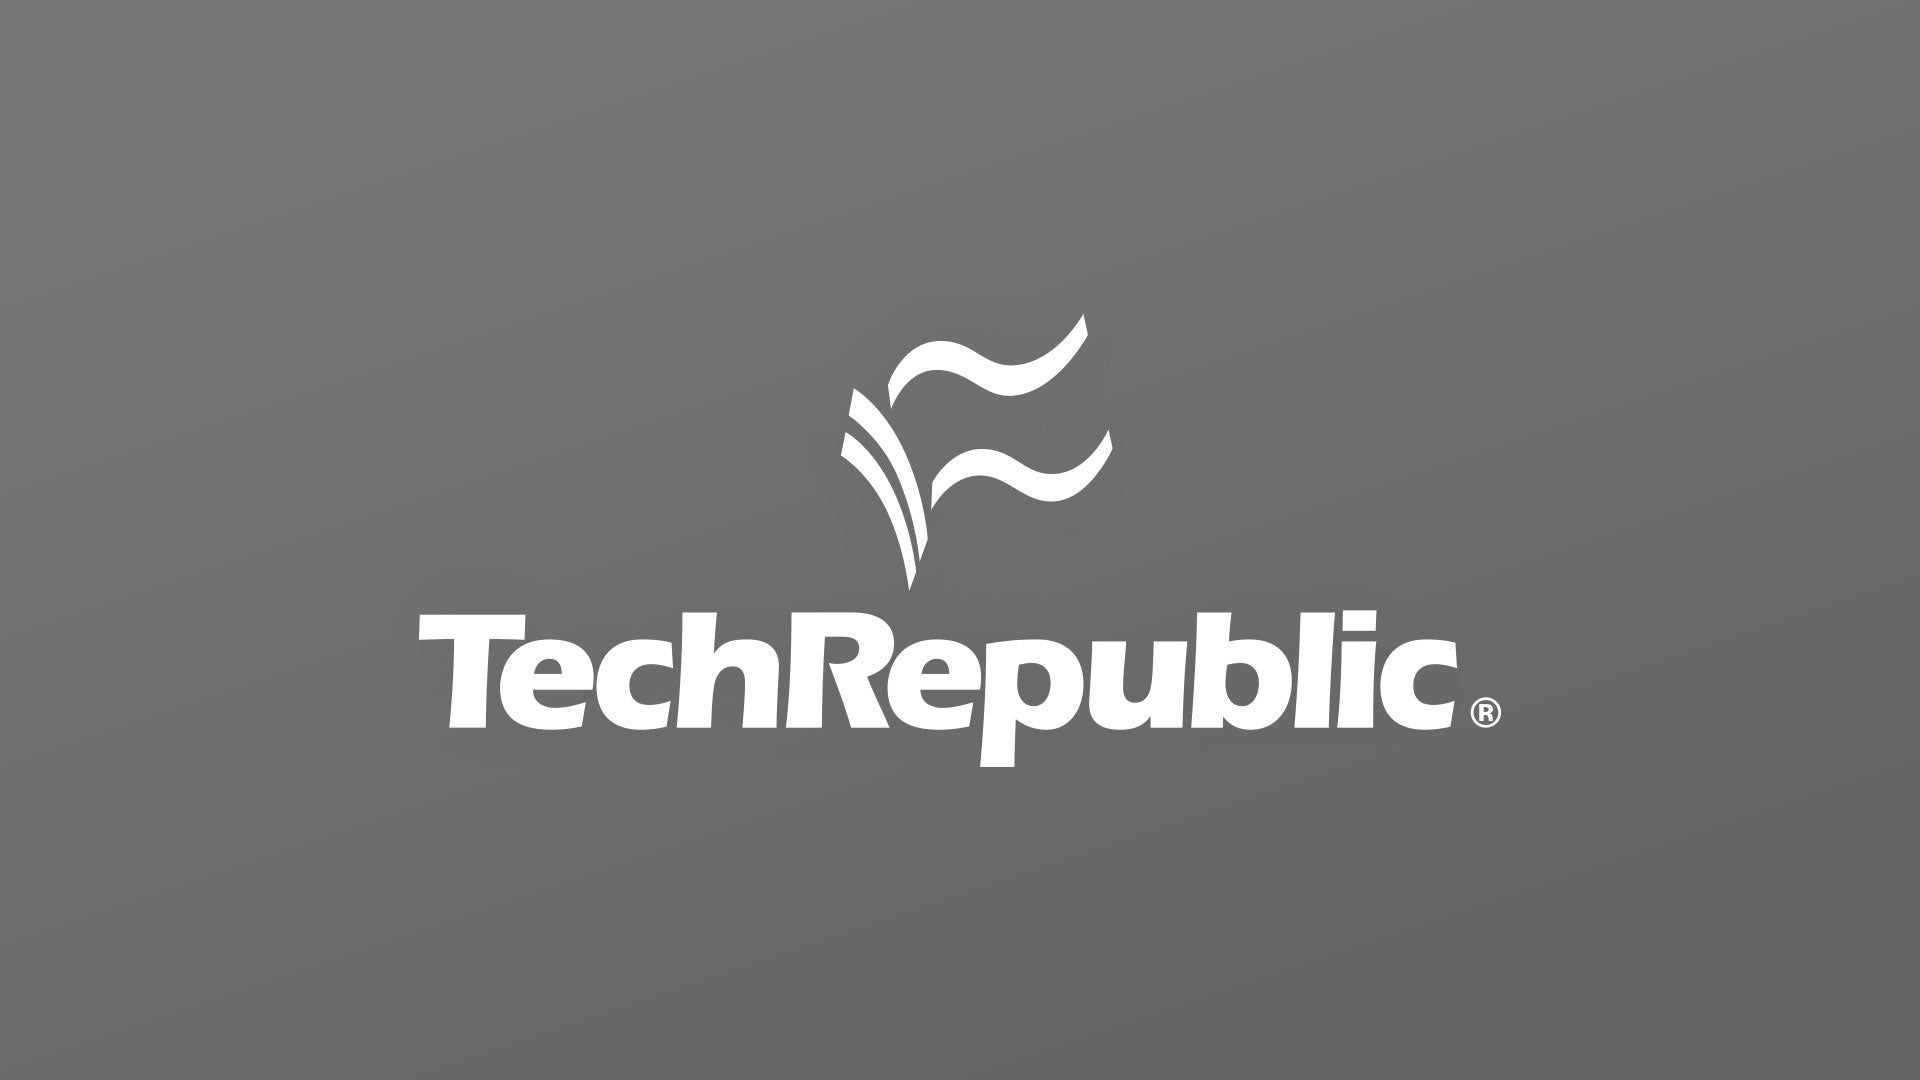 ClearOS Named in TechRepublic's Best 5 List